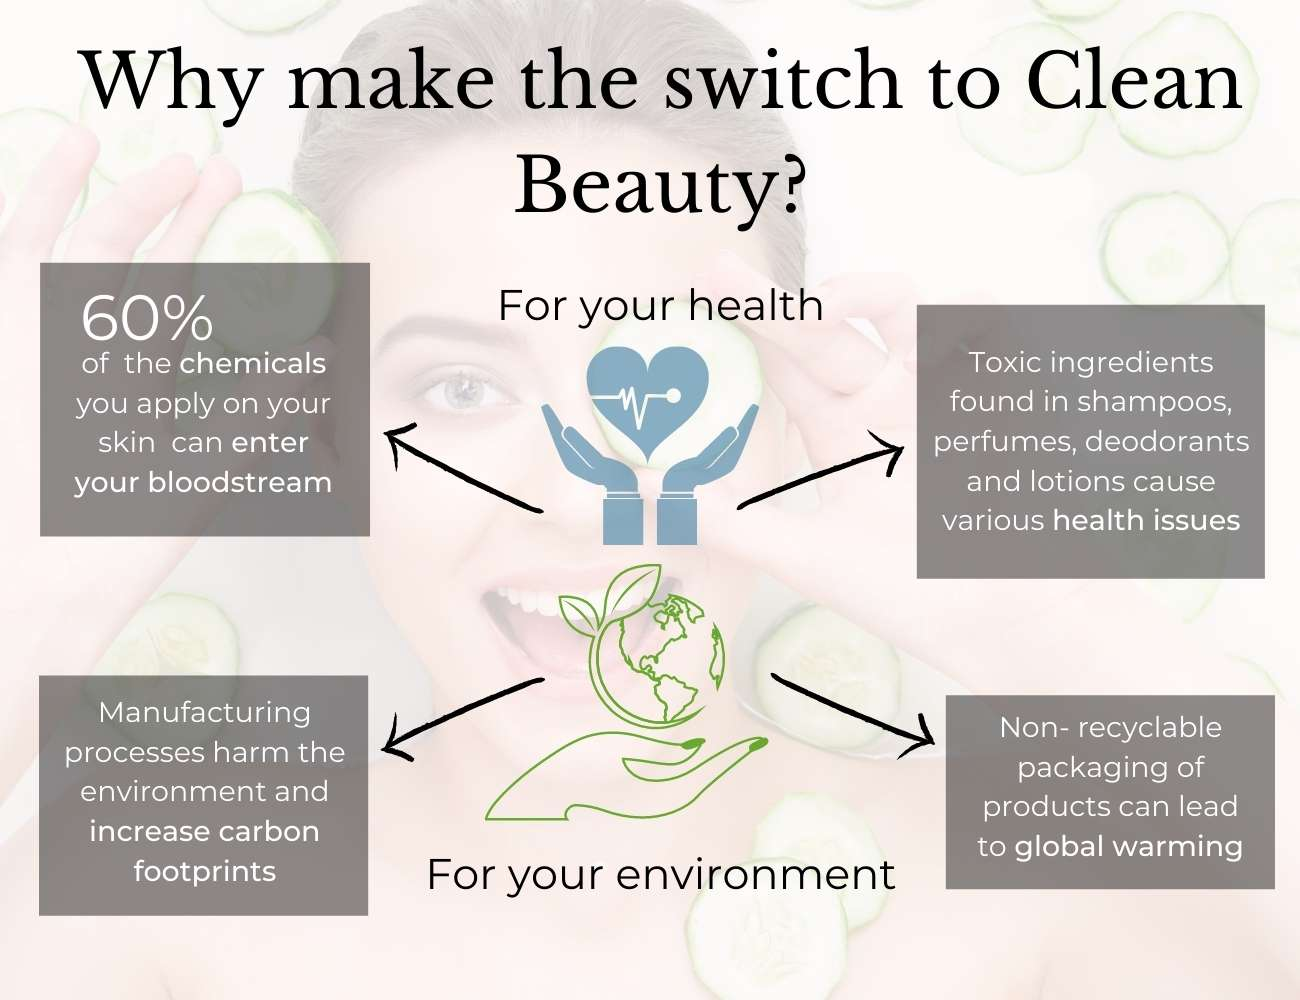 This is an image that explains why you should switch to clean beauty.